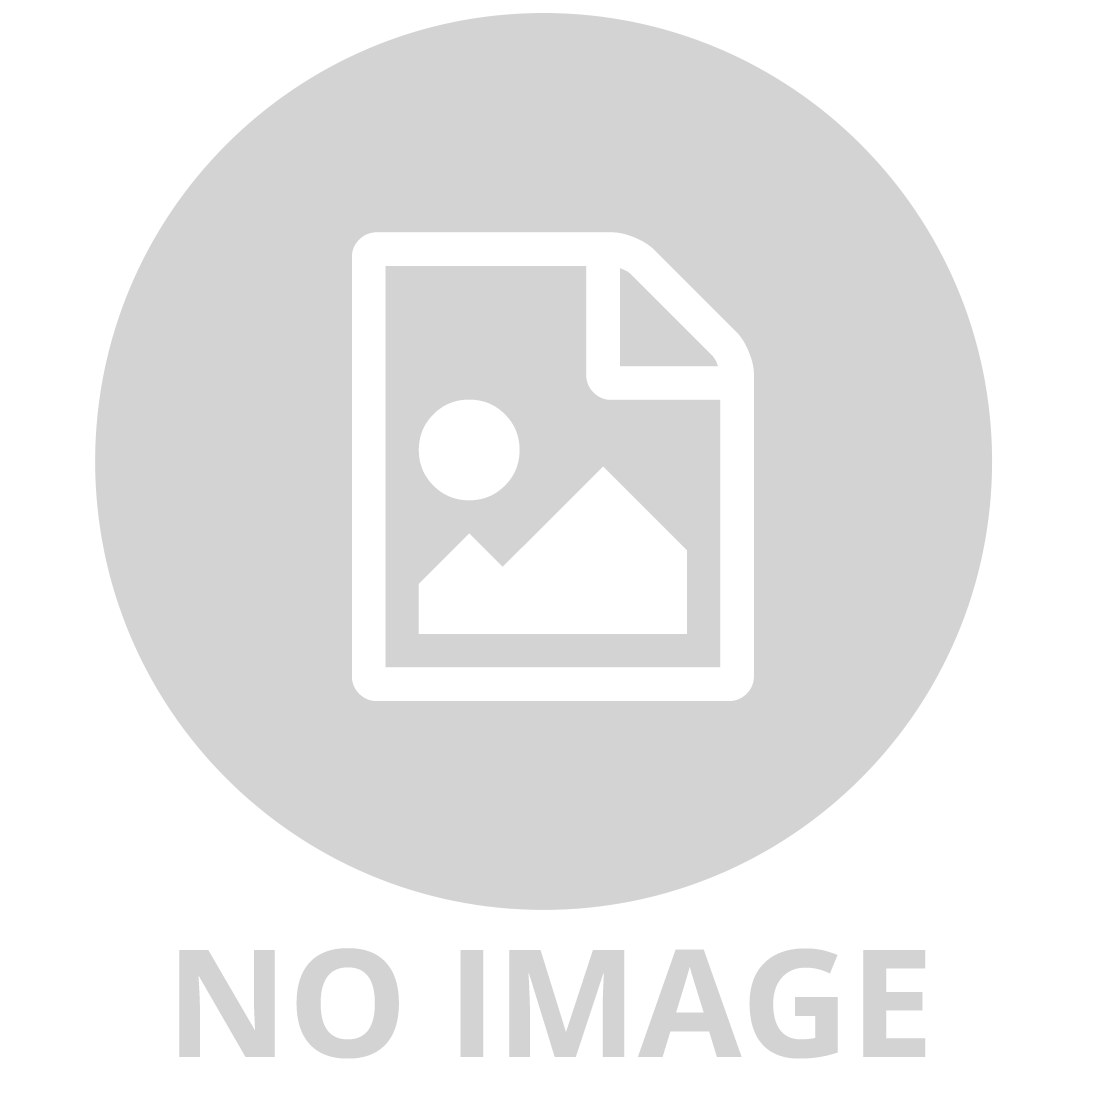 4 IN 1 WOODEN PUZZLE WITH STORAGE CASE